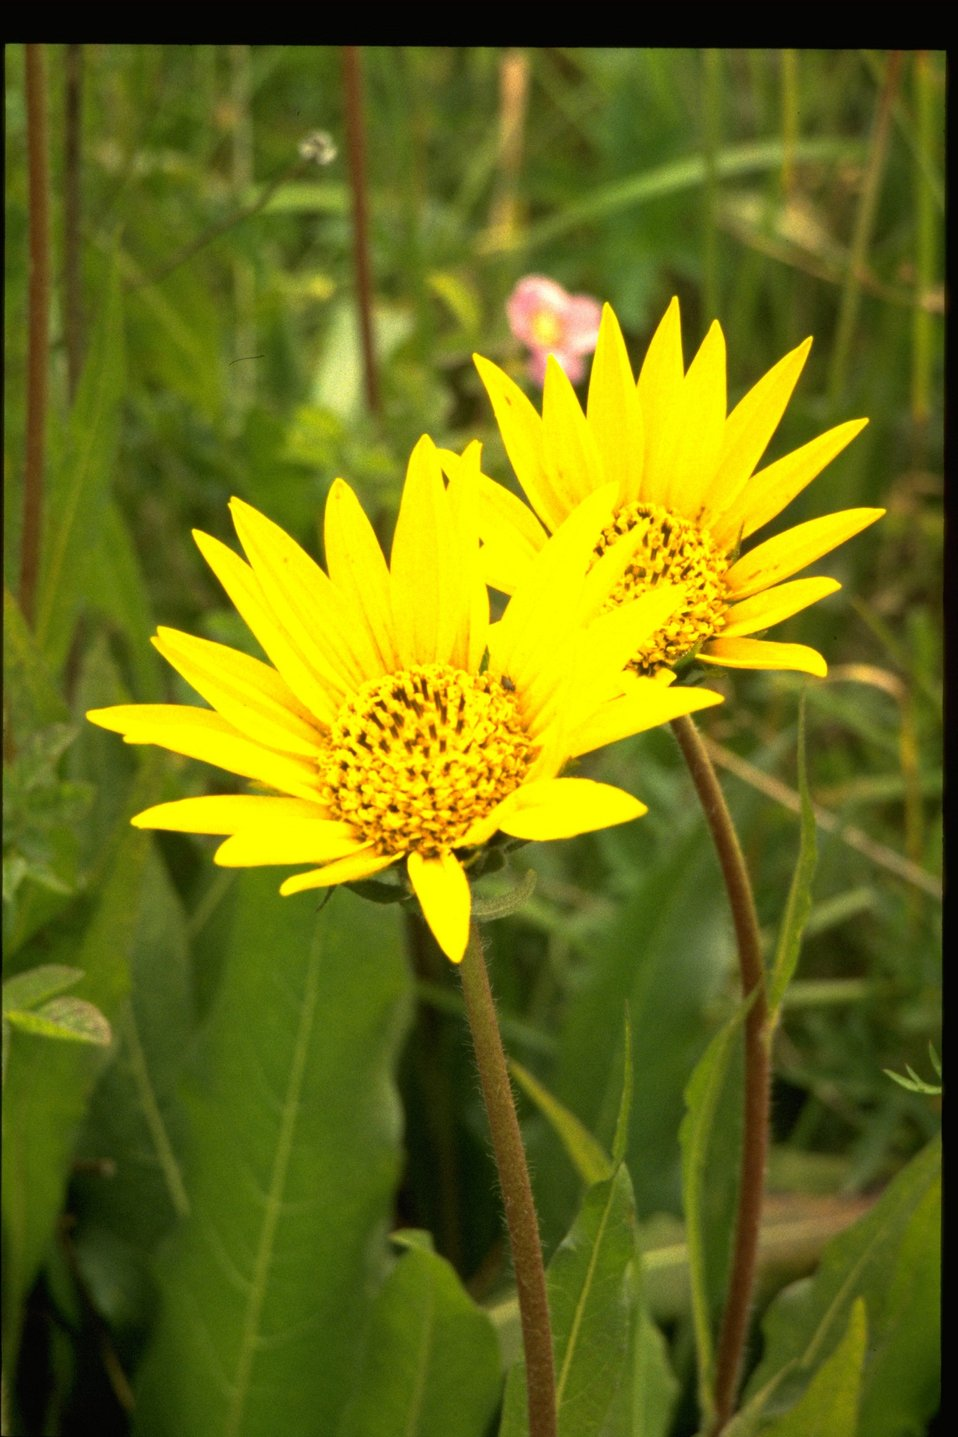 Medium shot of Narrowleaf Mule Ears, Wyethia angustifolia.